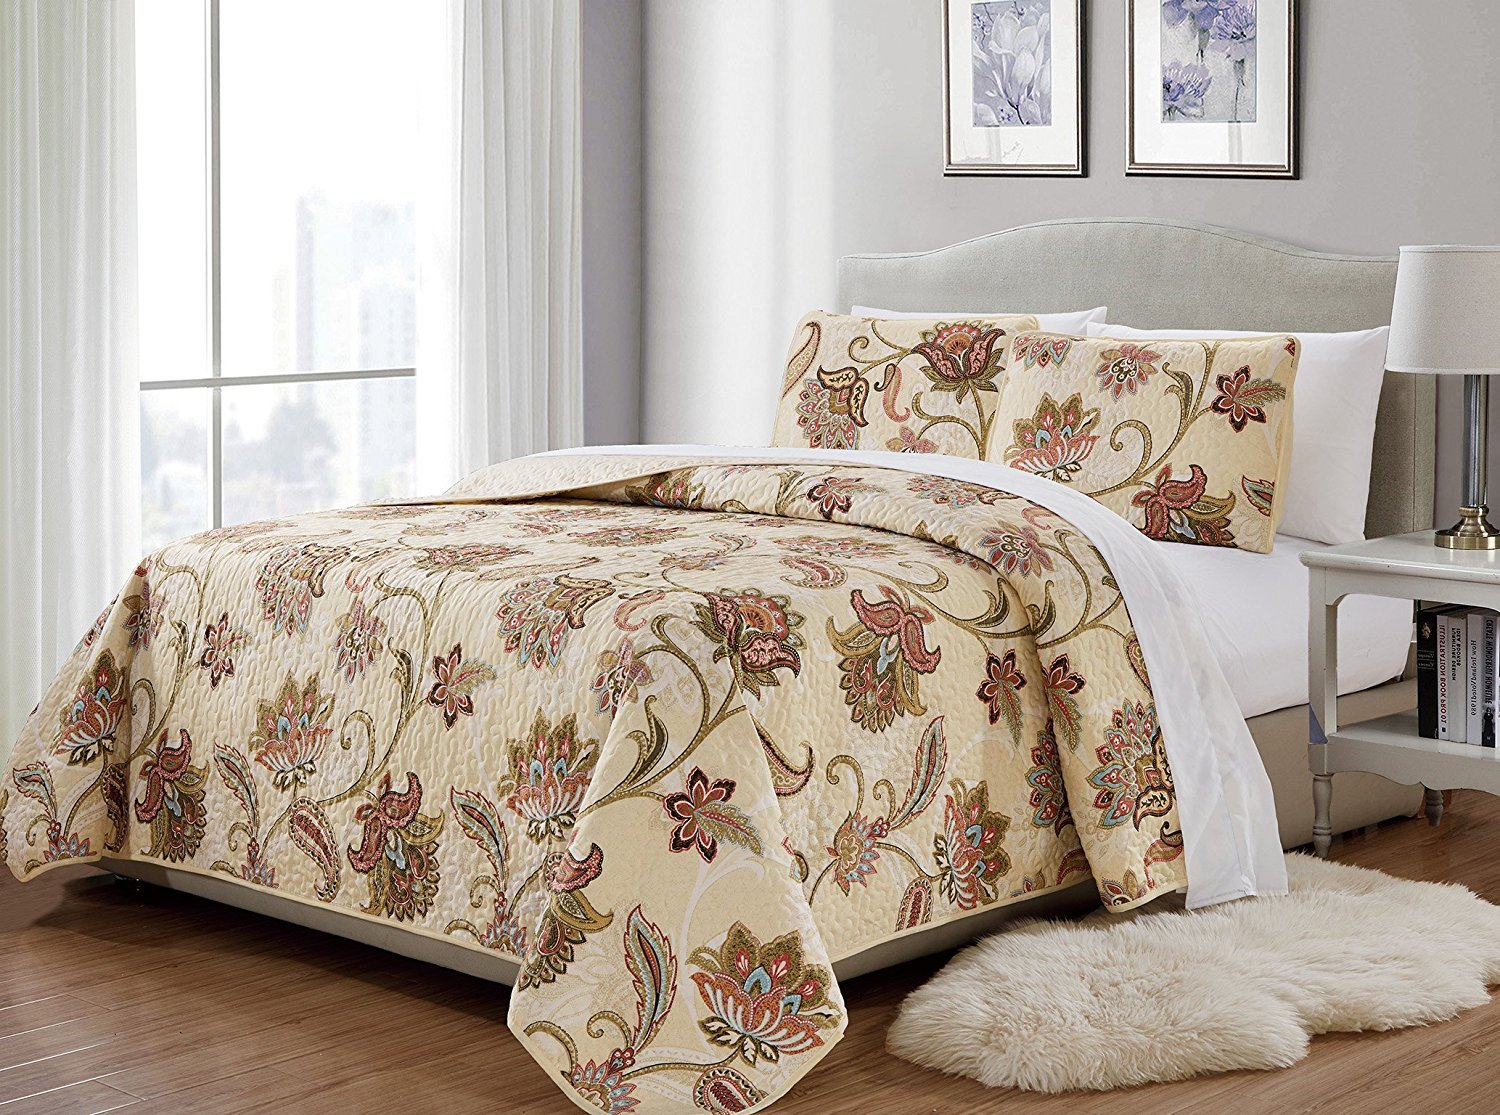 MK Home 2pc Twin/Twin Extra Long Bedspread Quilted Print Floral Beige Red Blue Taupe Over Size New # Jane